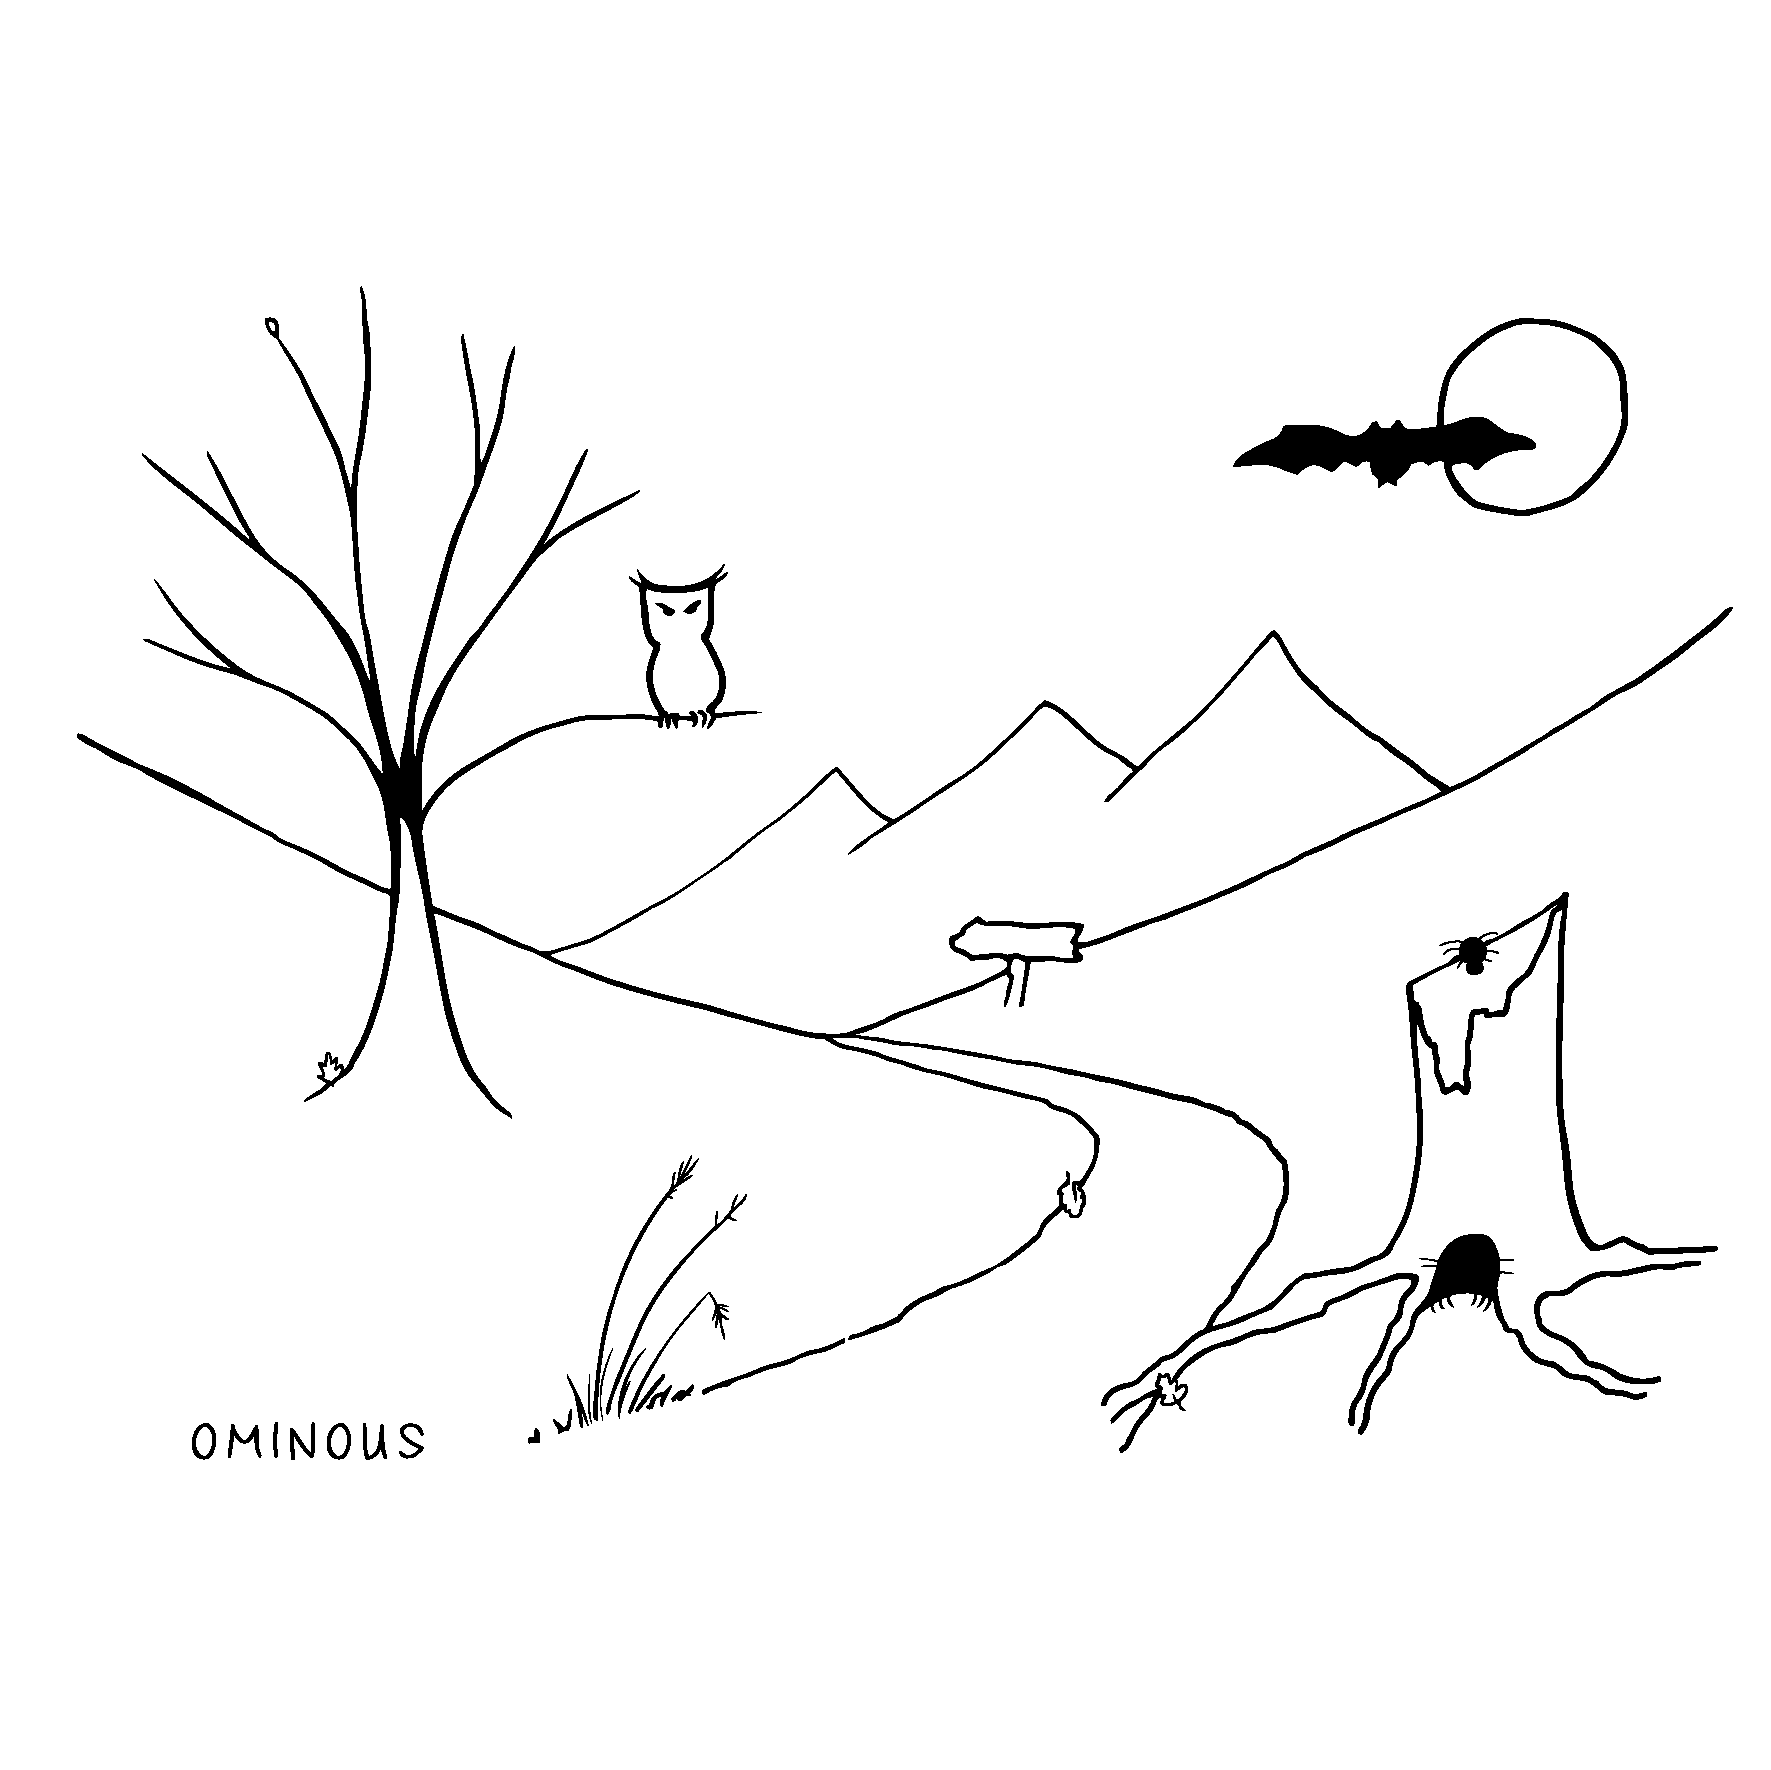 owl on tree, bat and moon, mountains, signpost, tree stump with spider and hidden rodent, path with leaves and grass